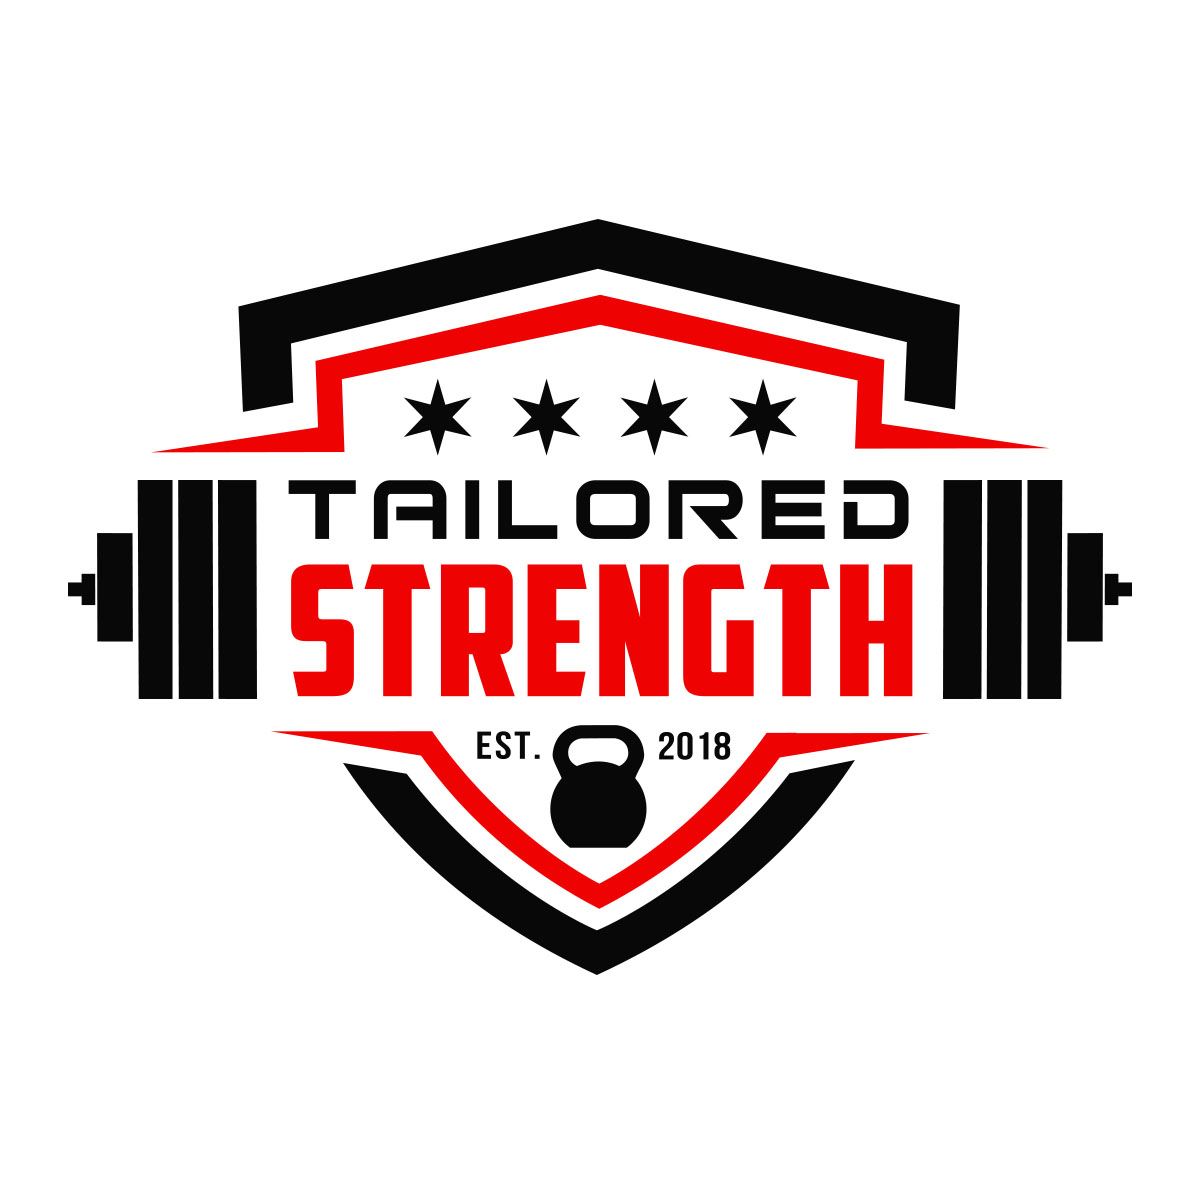 Tailored Strength